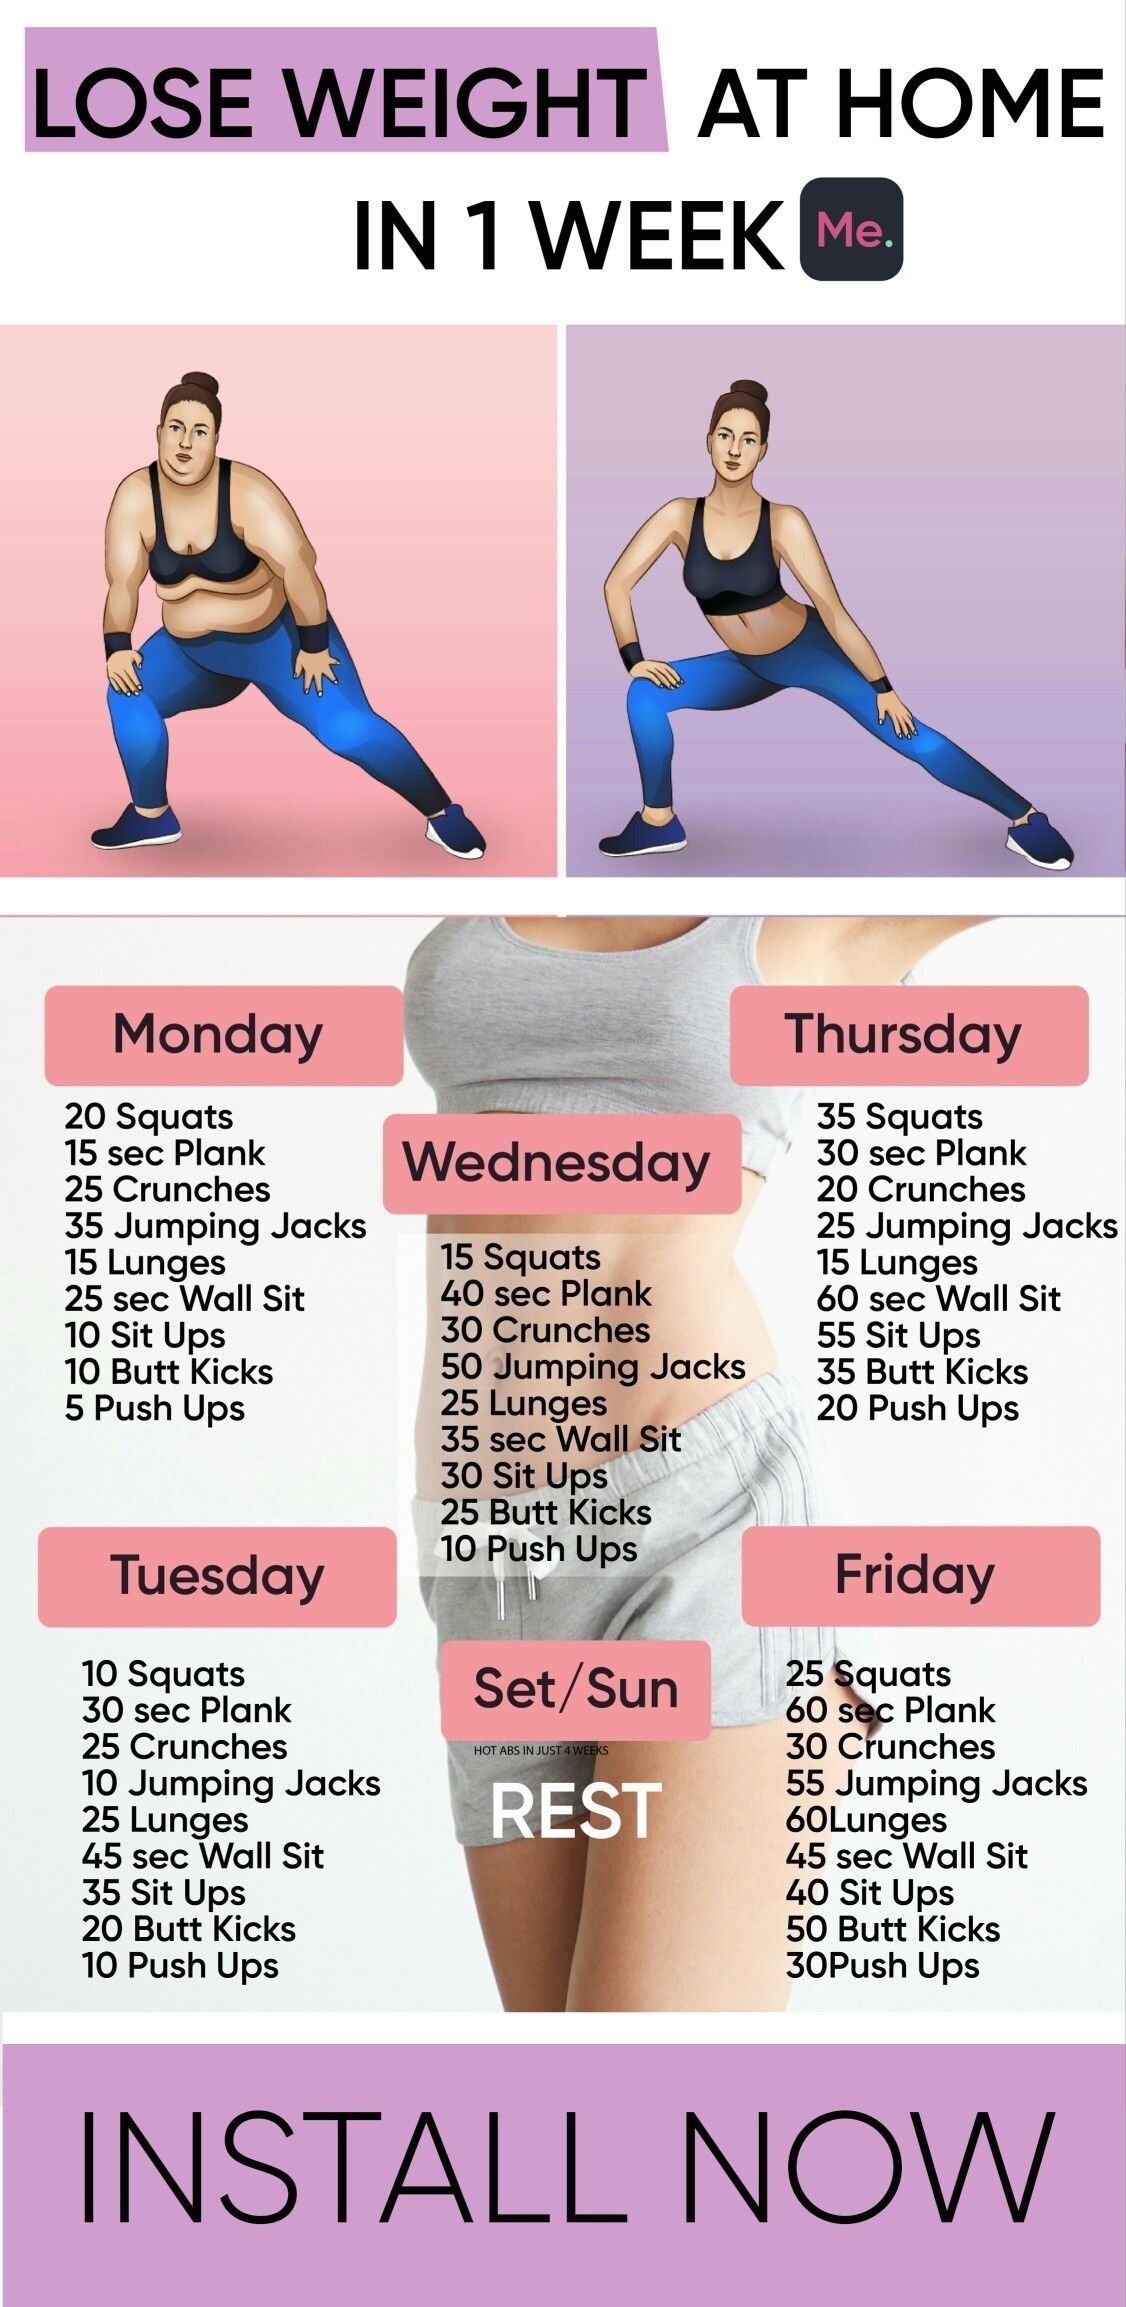 All You Need To Have A Fit Body Is A Workout Below Try This Exercises And Make Your Body Sexier Health And Fitness Articles Fitness Articles Body Workout Plan